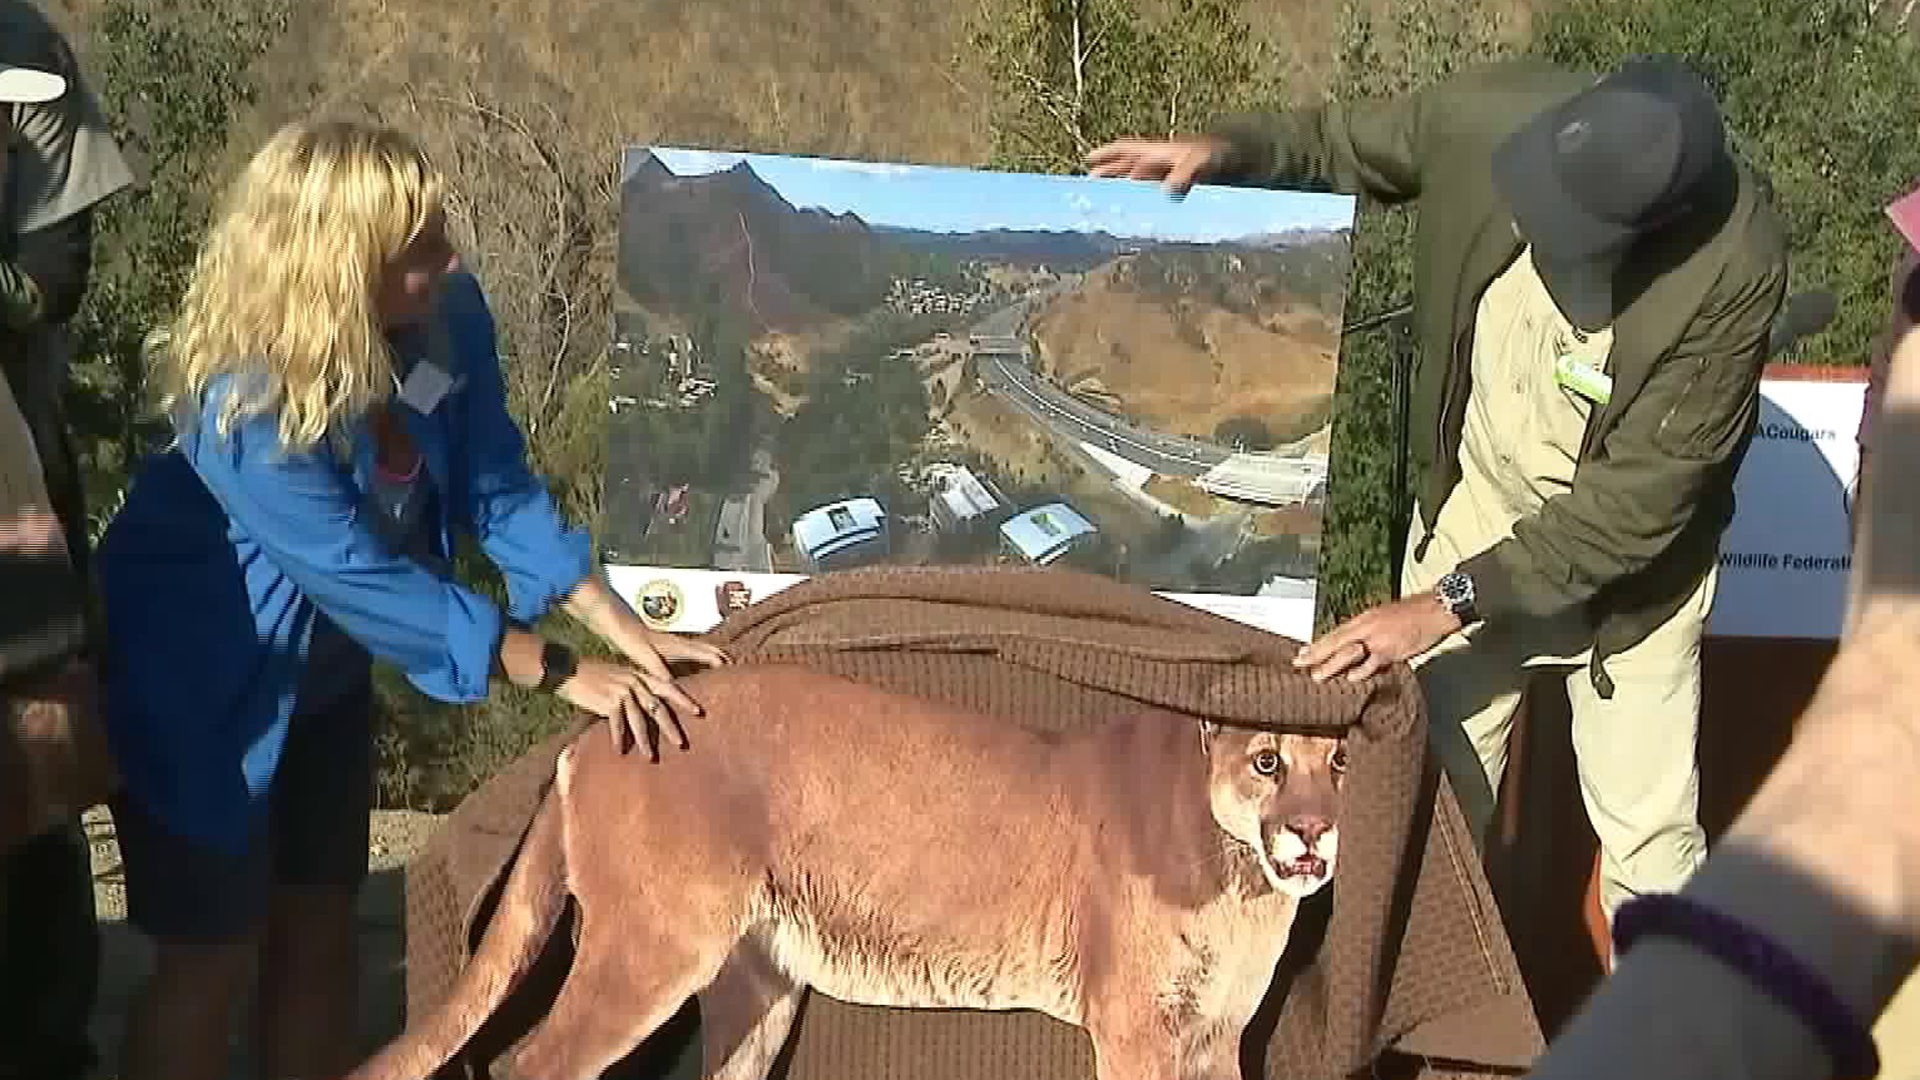 Wildlife officials unveiled a new image of the 101 Freeway wildlife overpass on Oct. 23, 2018. (KTLA)